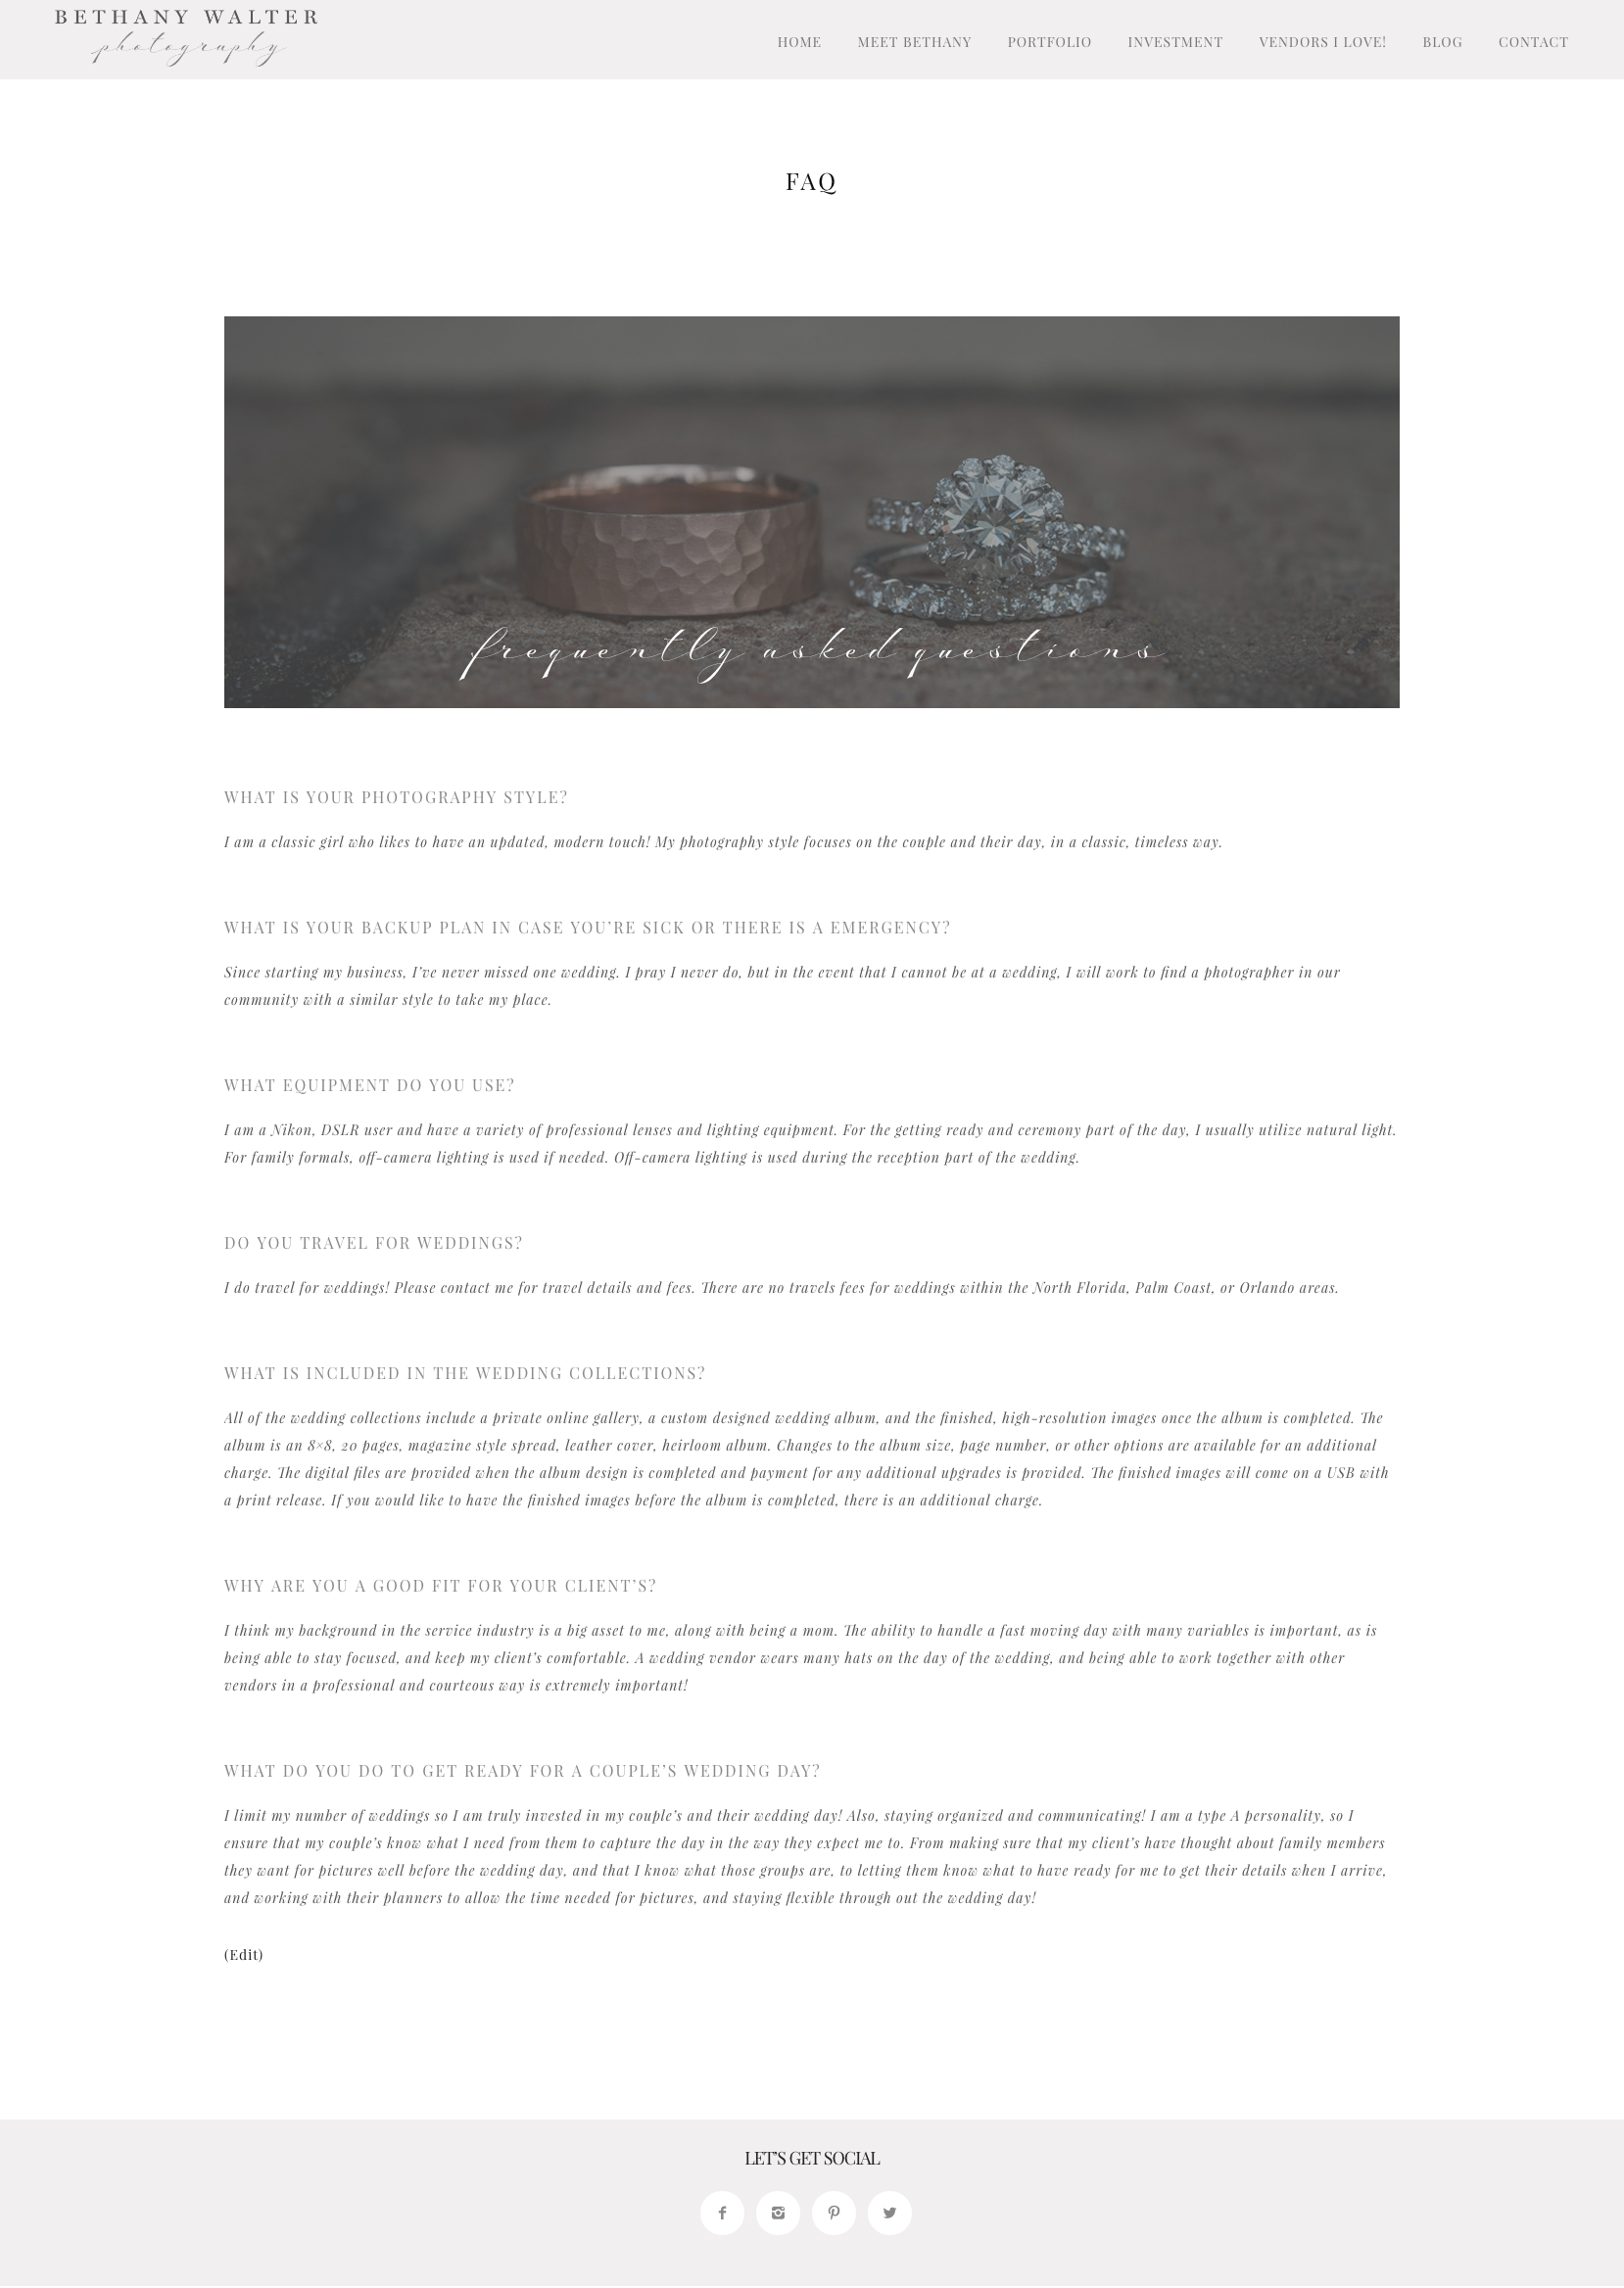 FAQ page for Bethany Walter Photography, by Fancy Girl Design Studio